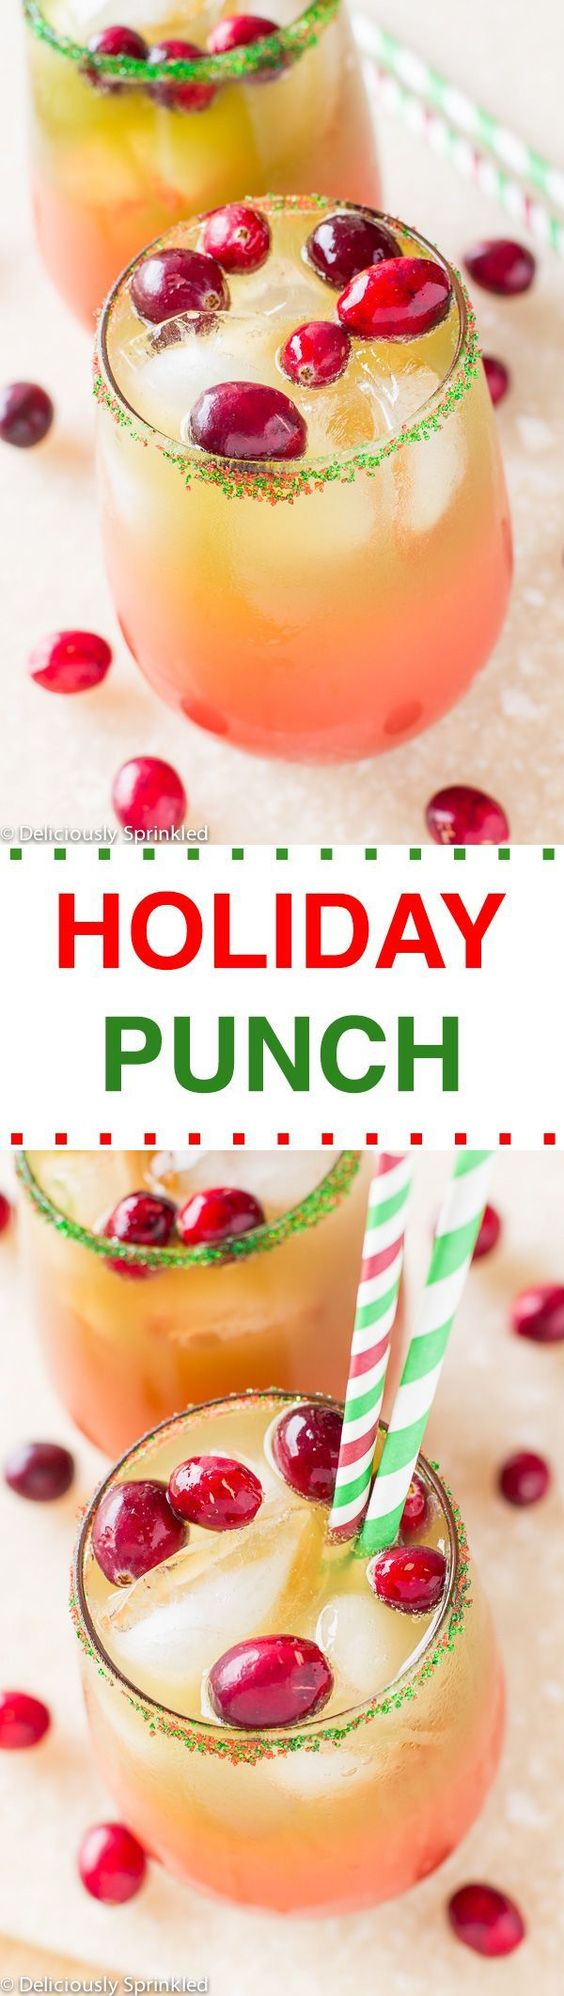 THE BEST HOLIDAY PUNCH RECIPE